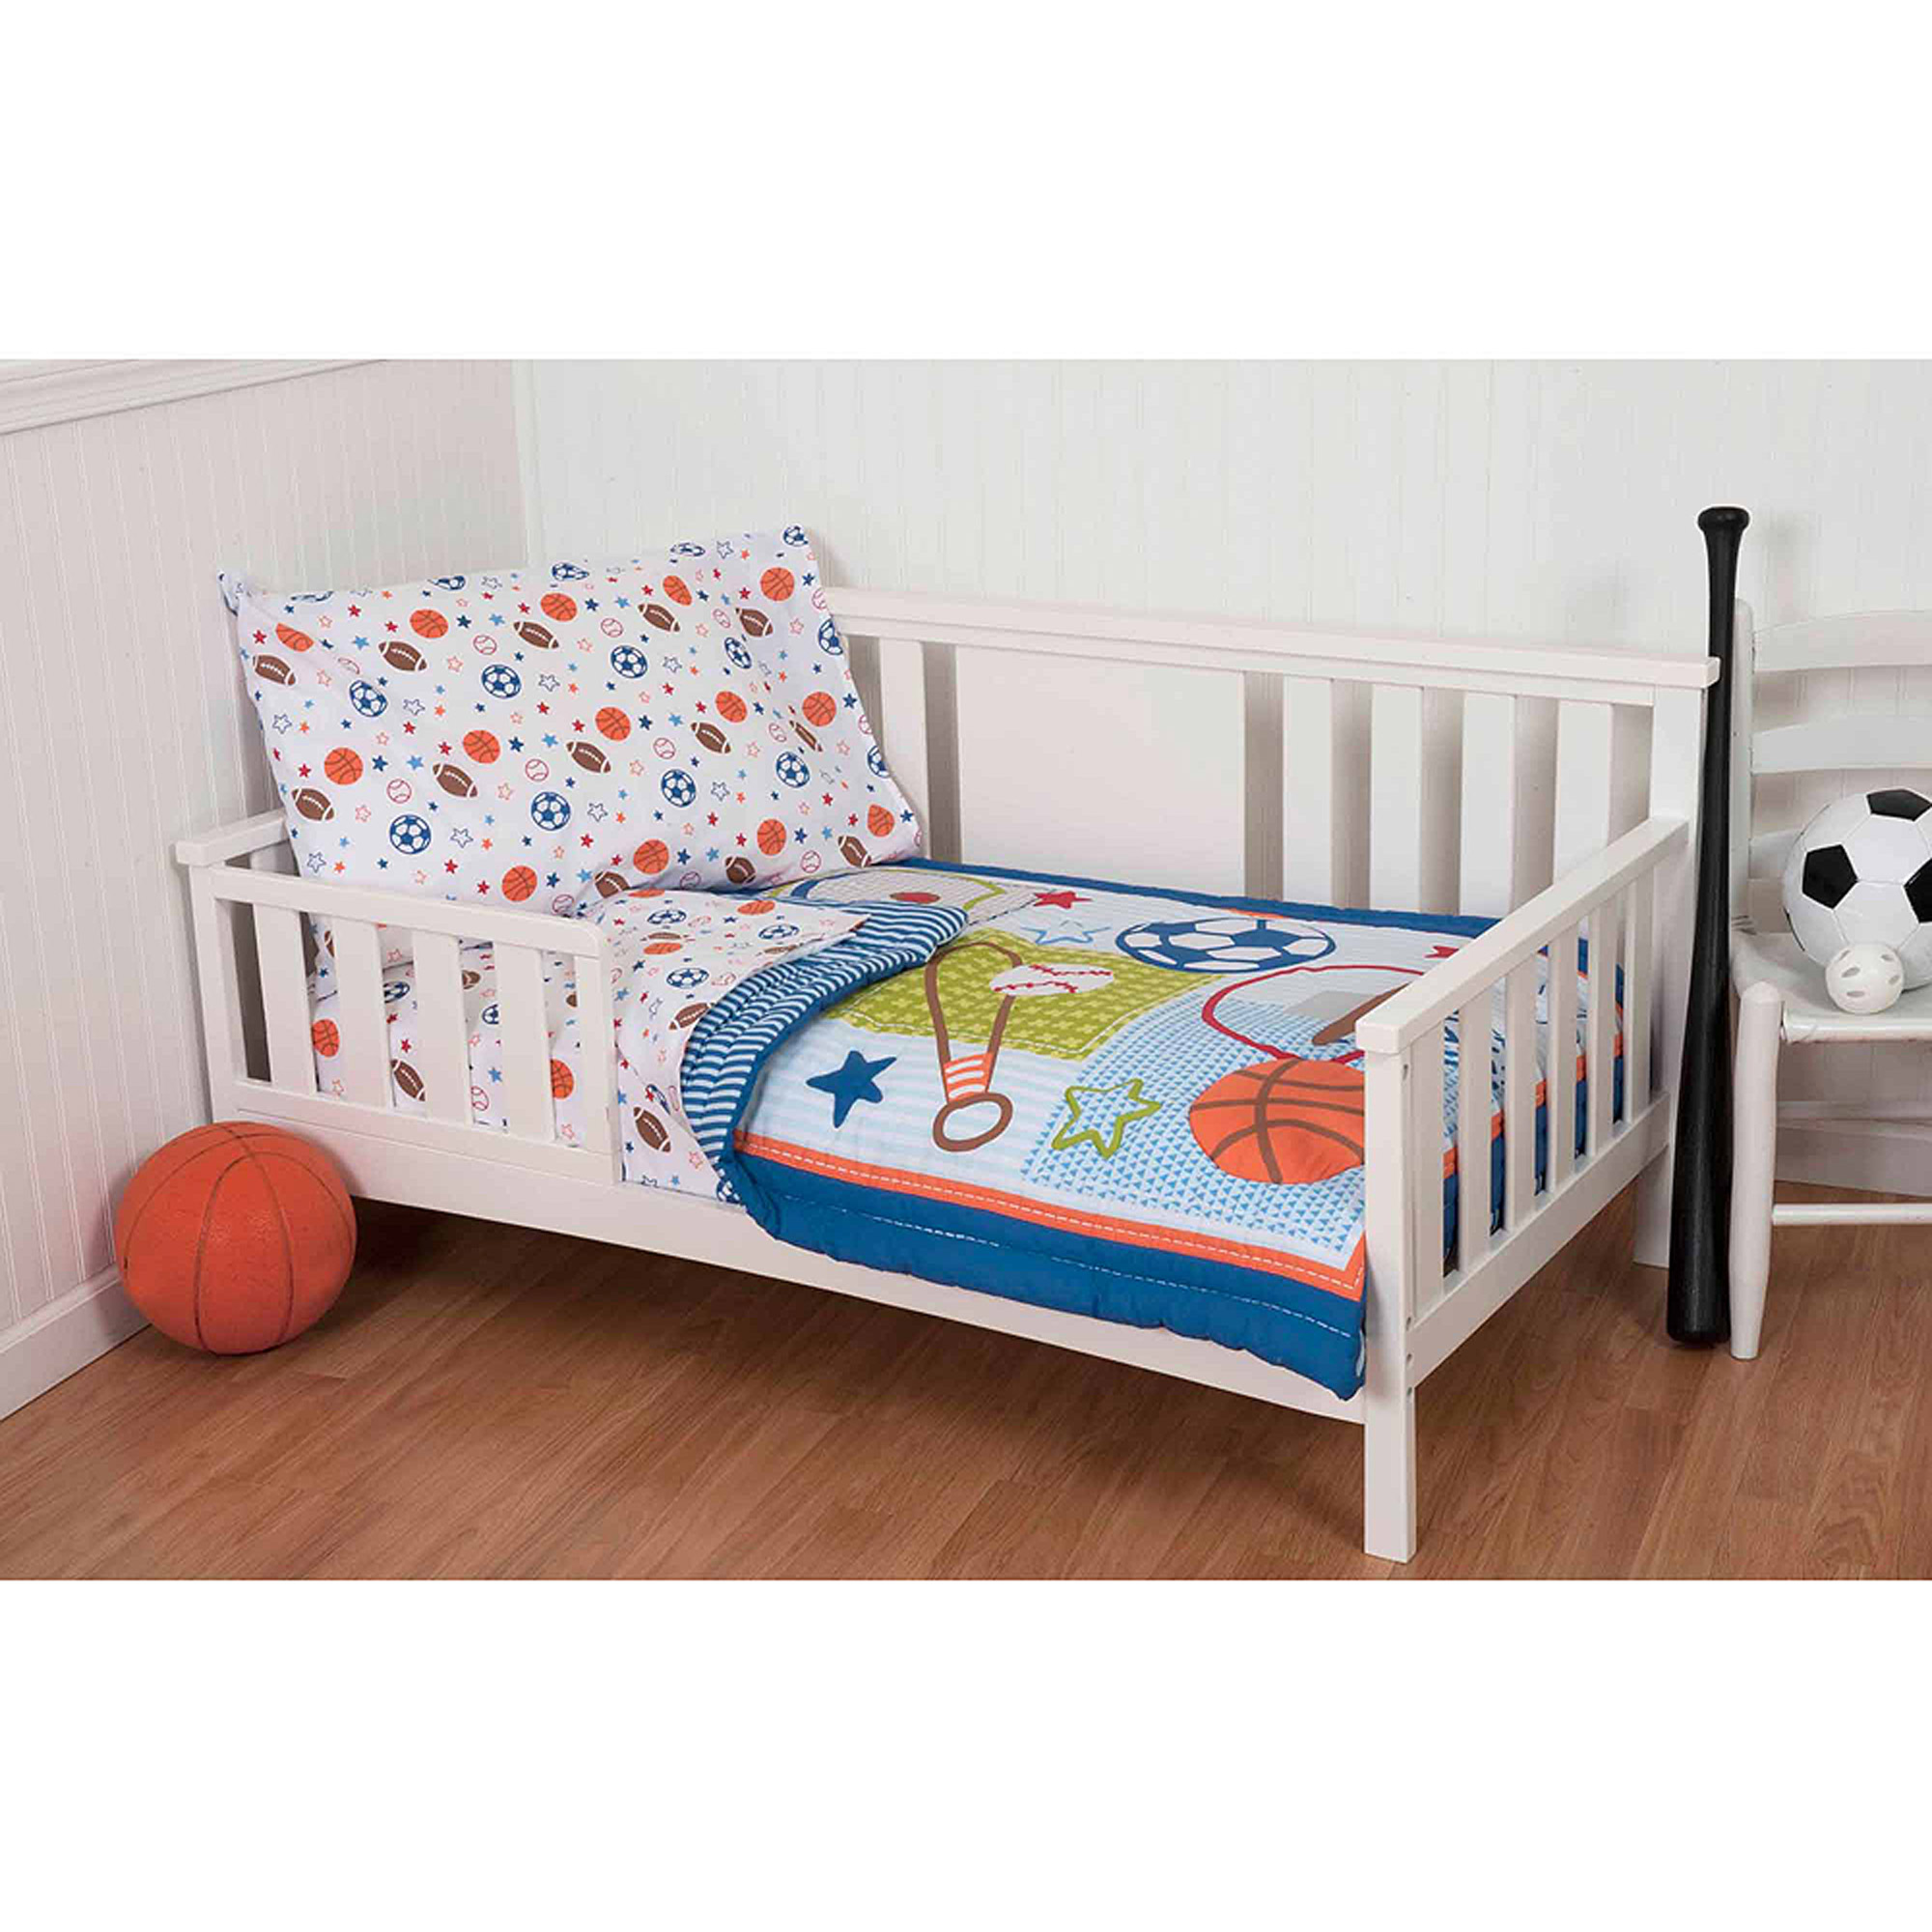 Sumersault Superstar 4-Piece Toddler Bedding Set by Sumersault